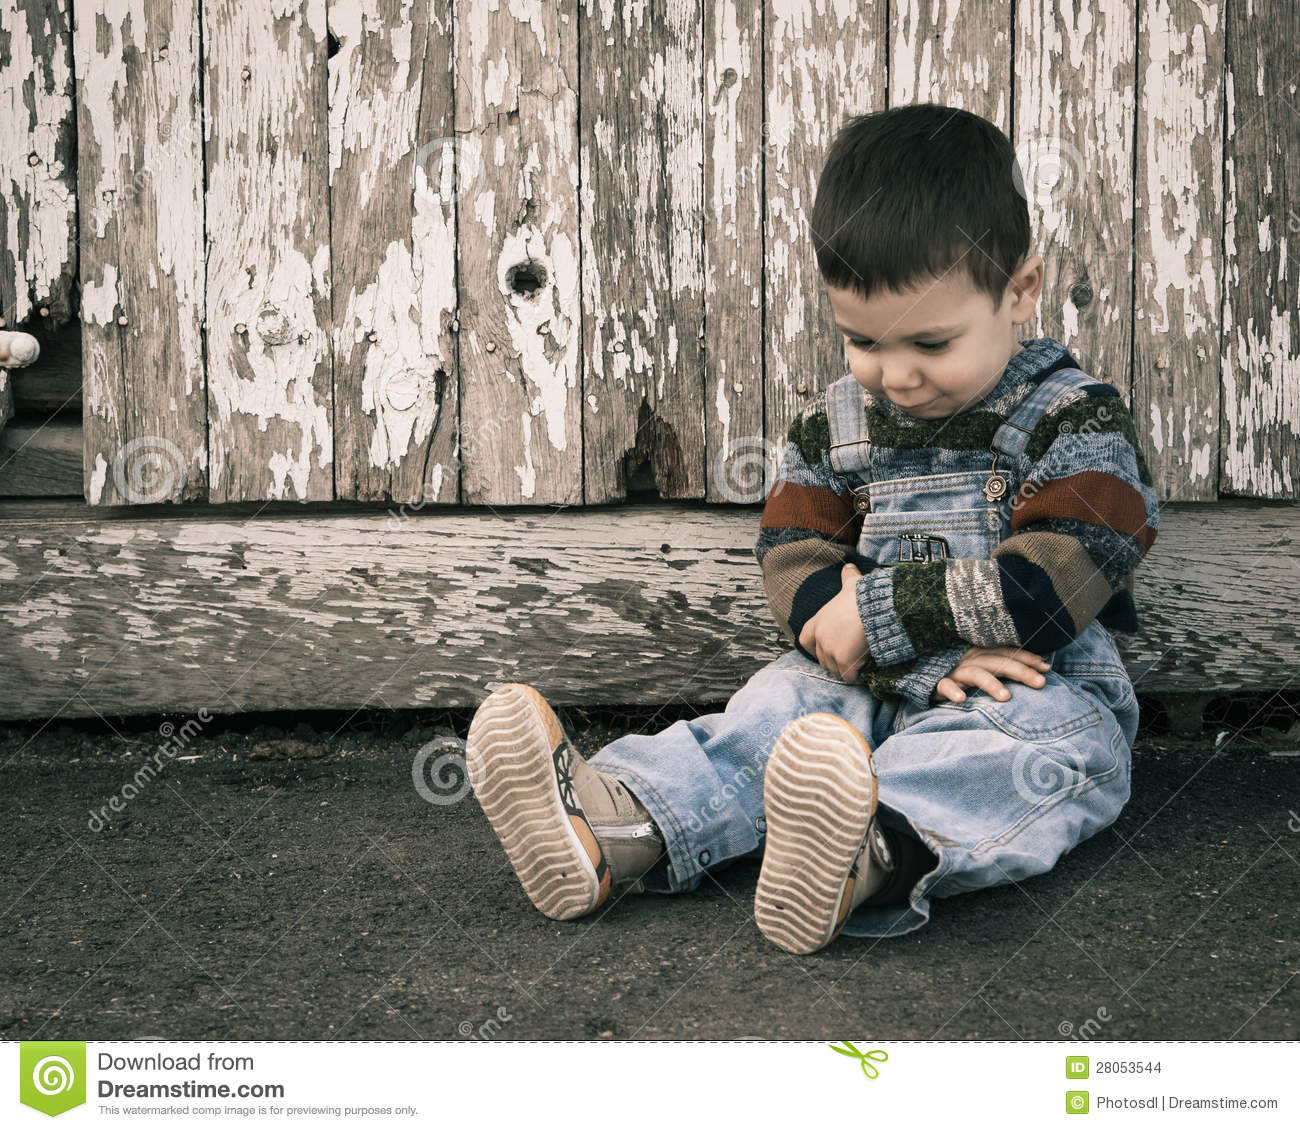 Sad lonely boy sitting near a wooden wall. Vintage color.